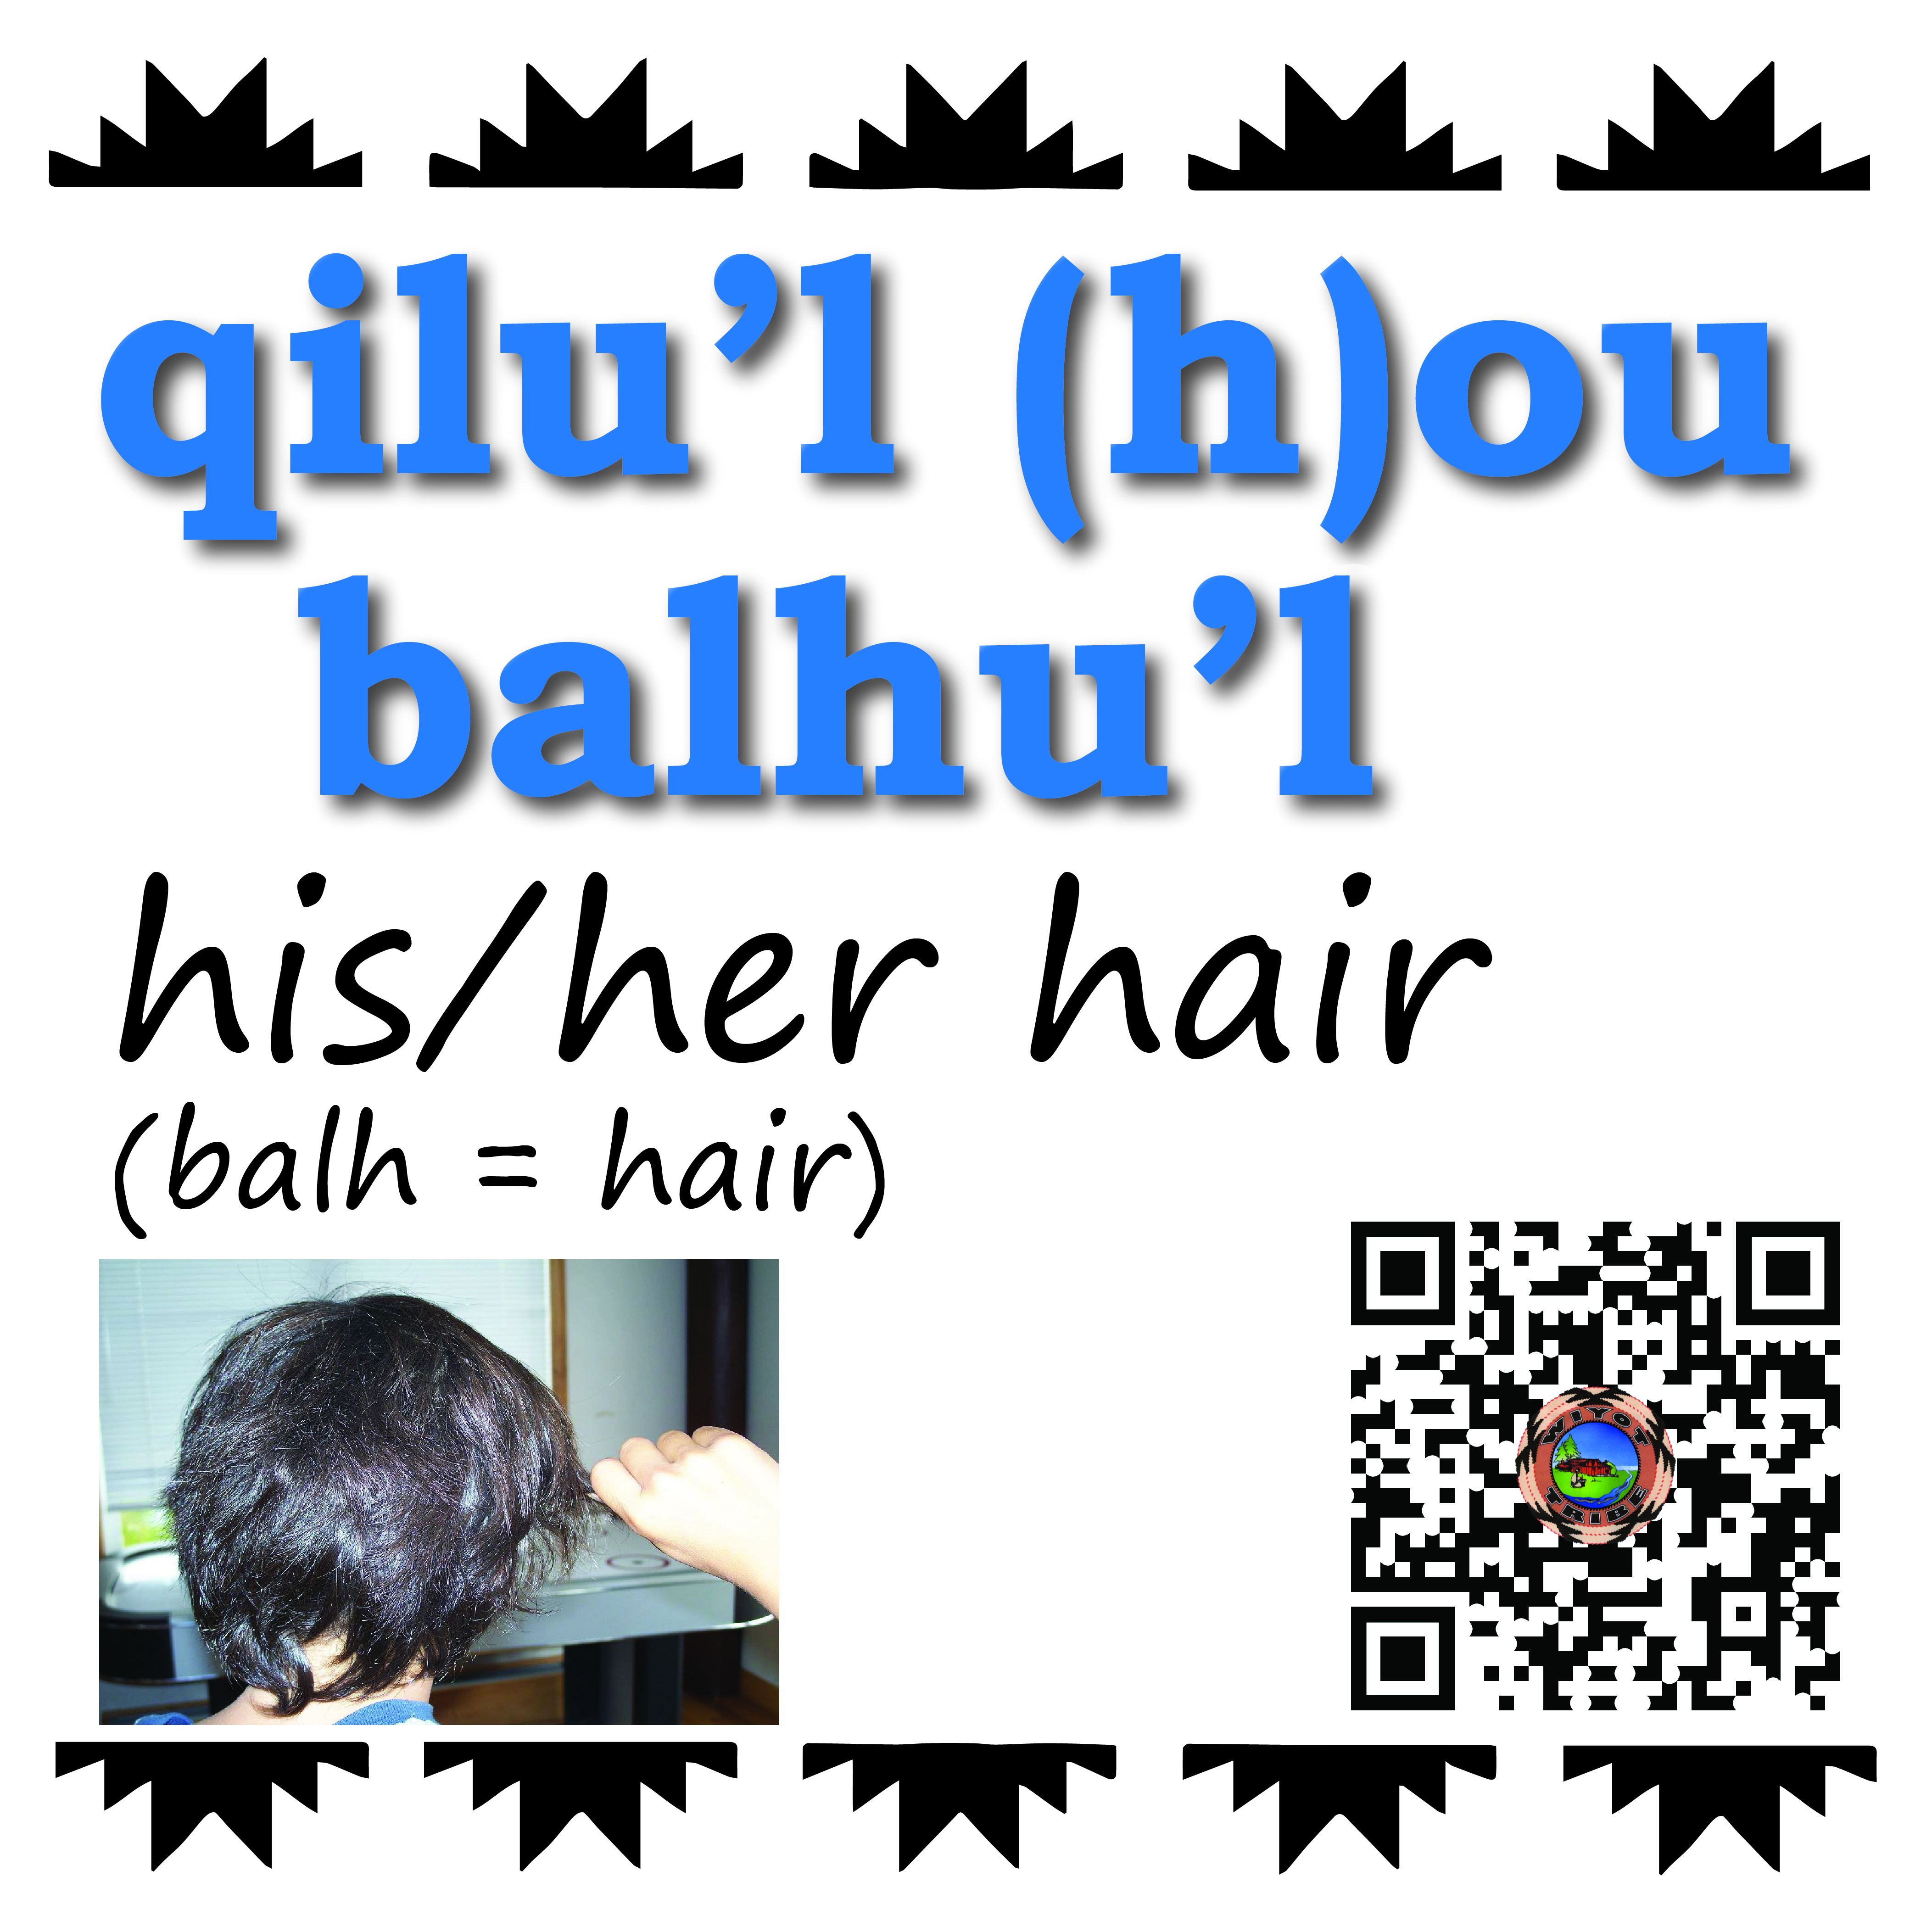 qilul_hou_balhul_his_her_someones_hair